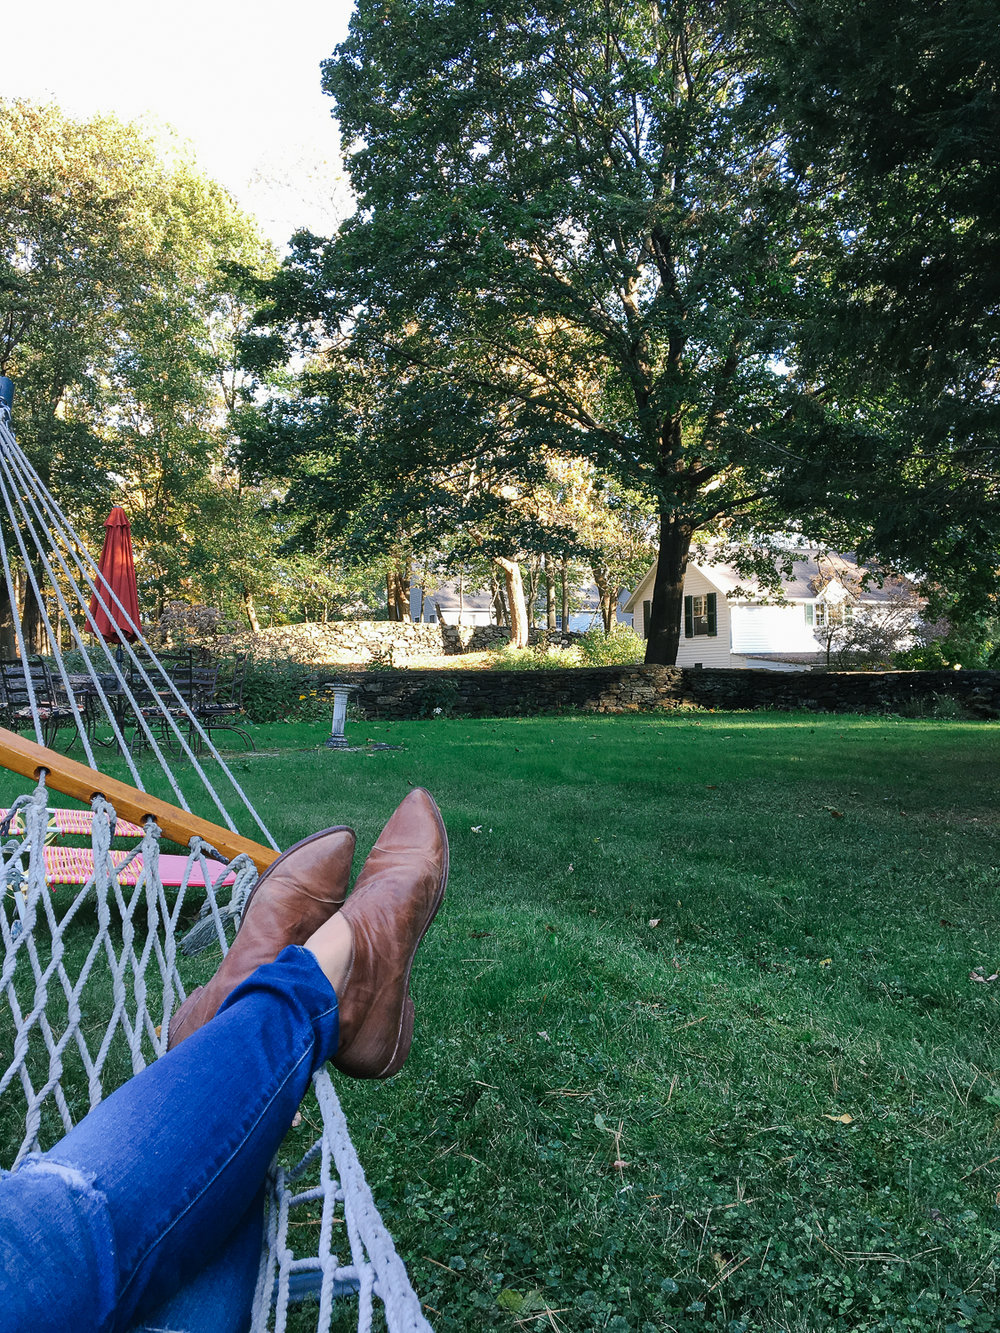 Enjoying the hammock at the Birchwood Inn in Lenox, MA.